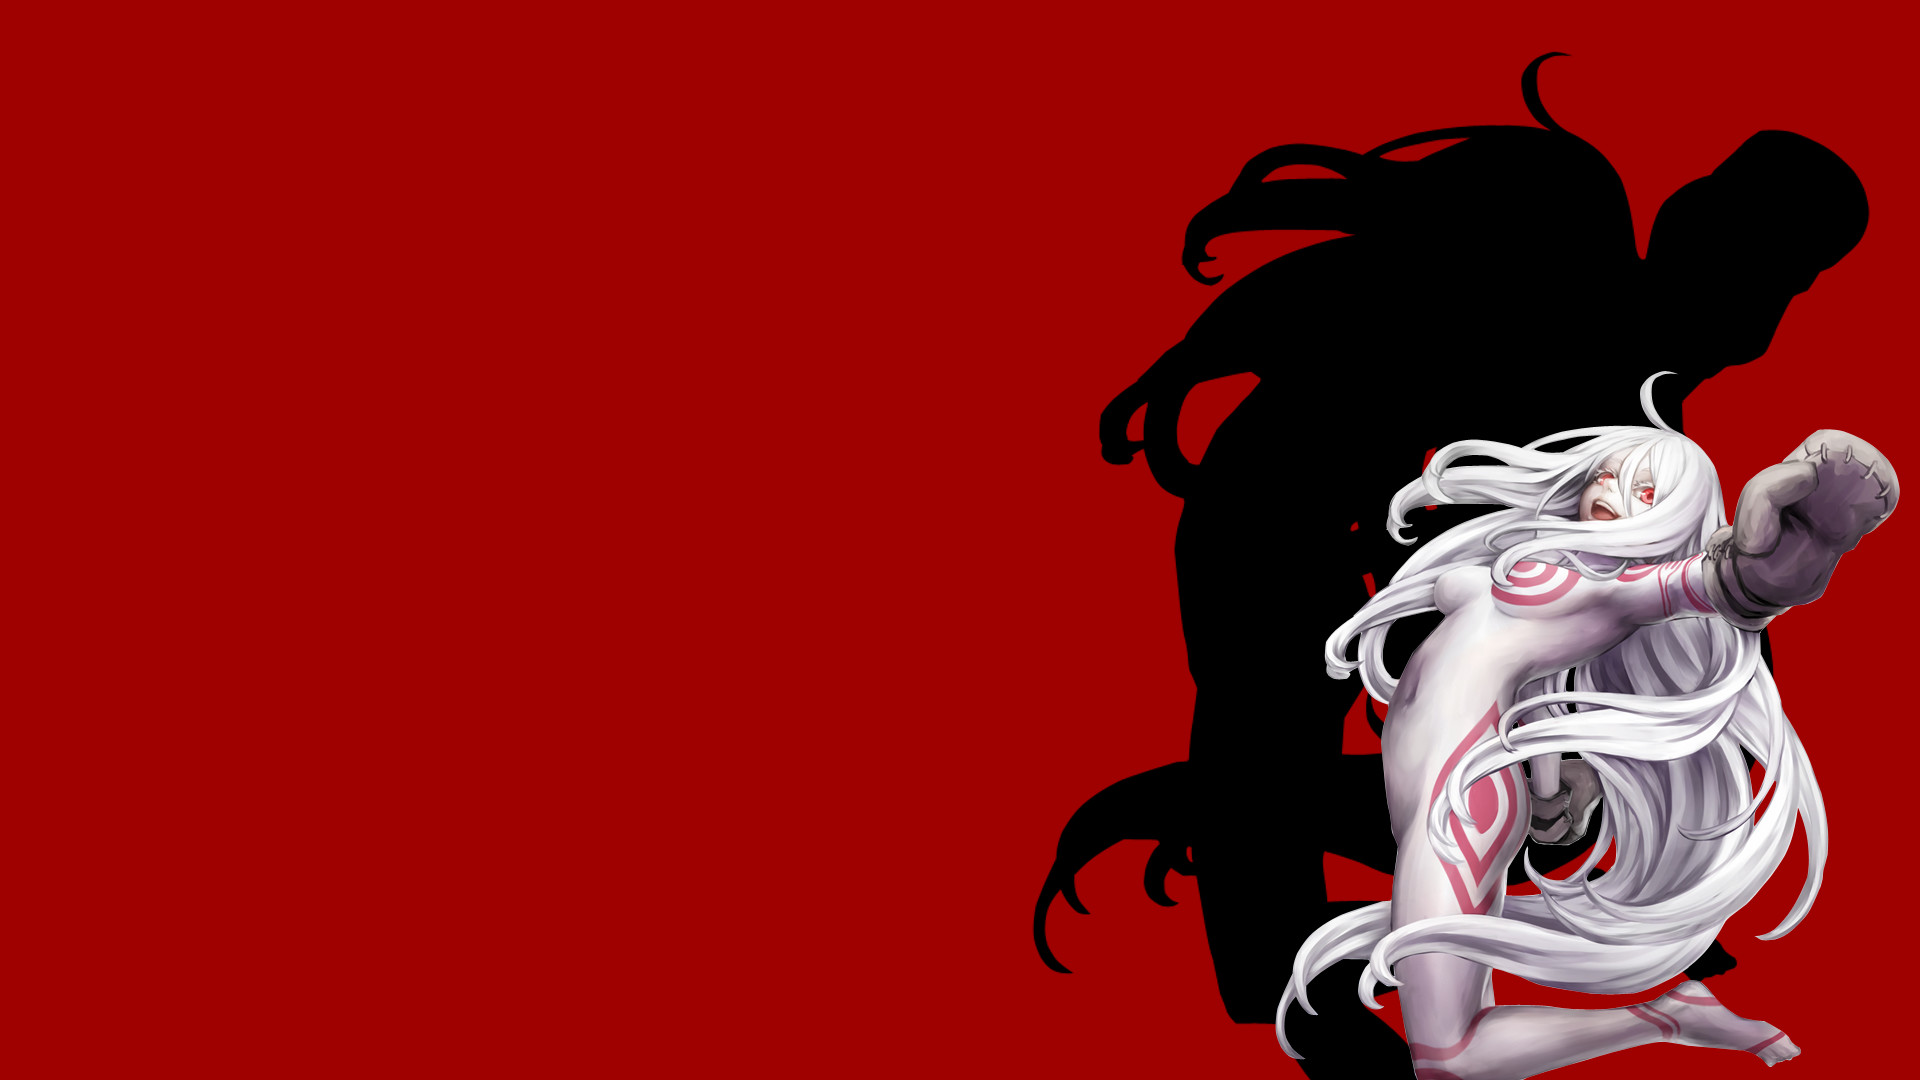 1920x1080 Shiro Deadman Wonderland Wallpaper No Logo by SaitamaOP on